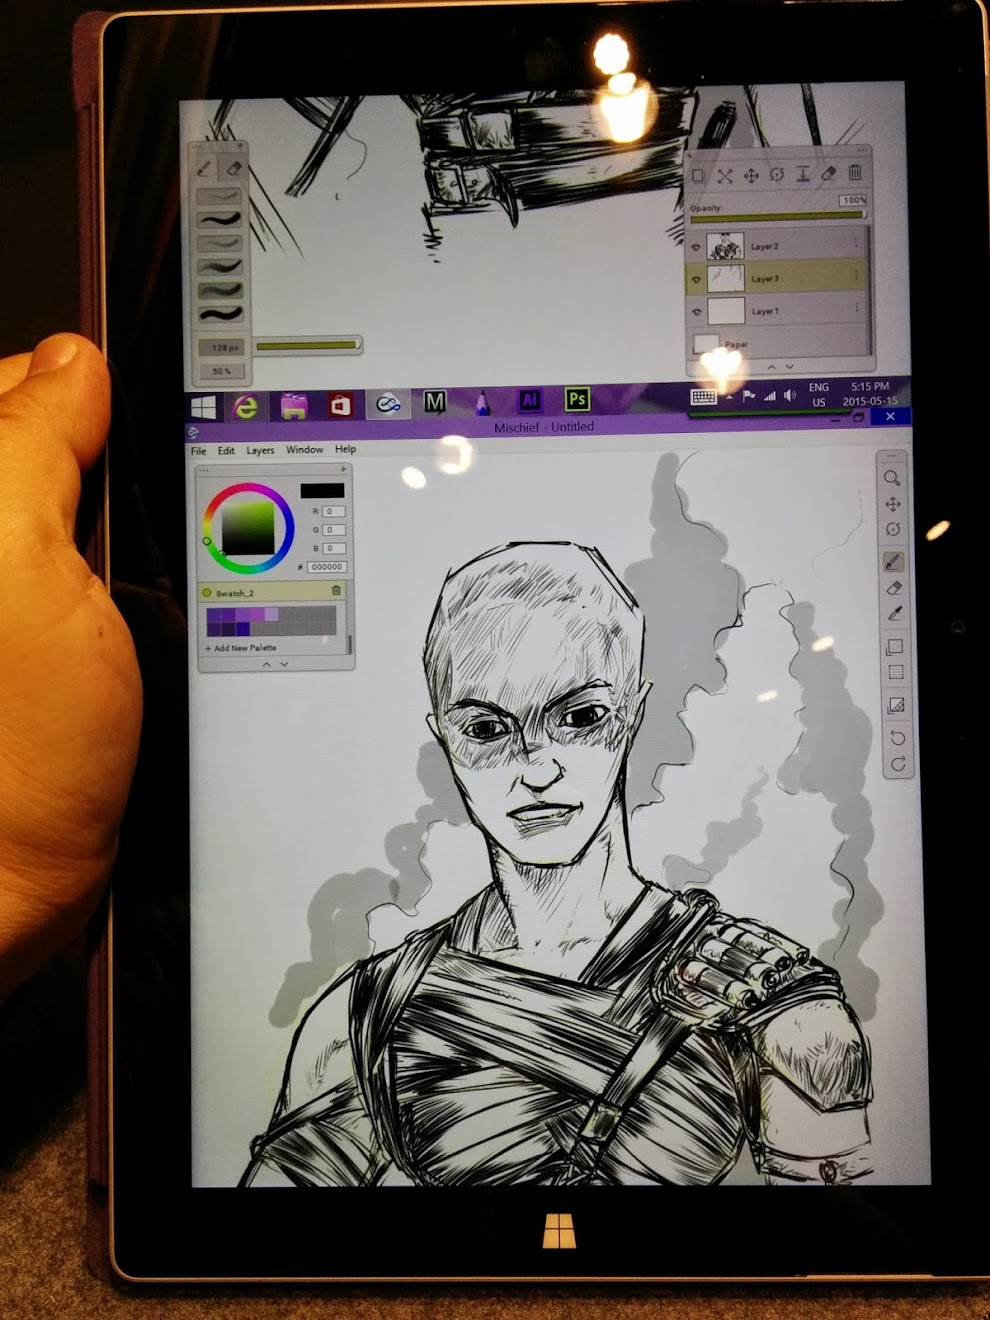 Best drawing apps for surface pro - Software